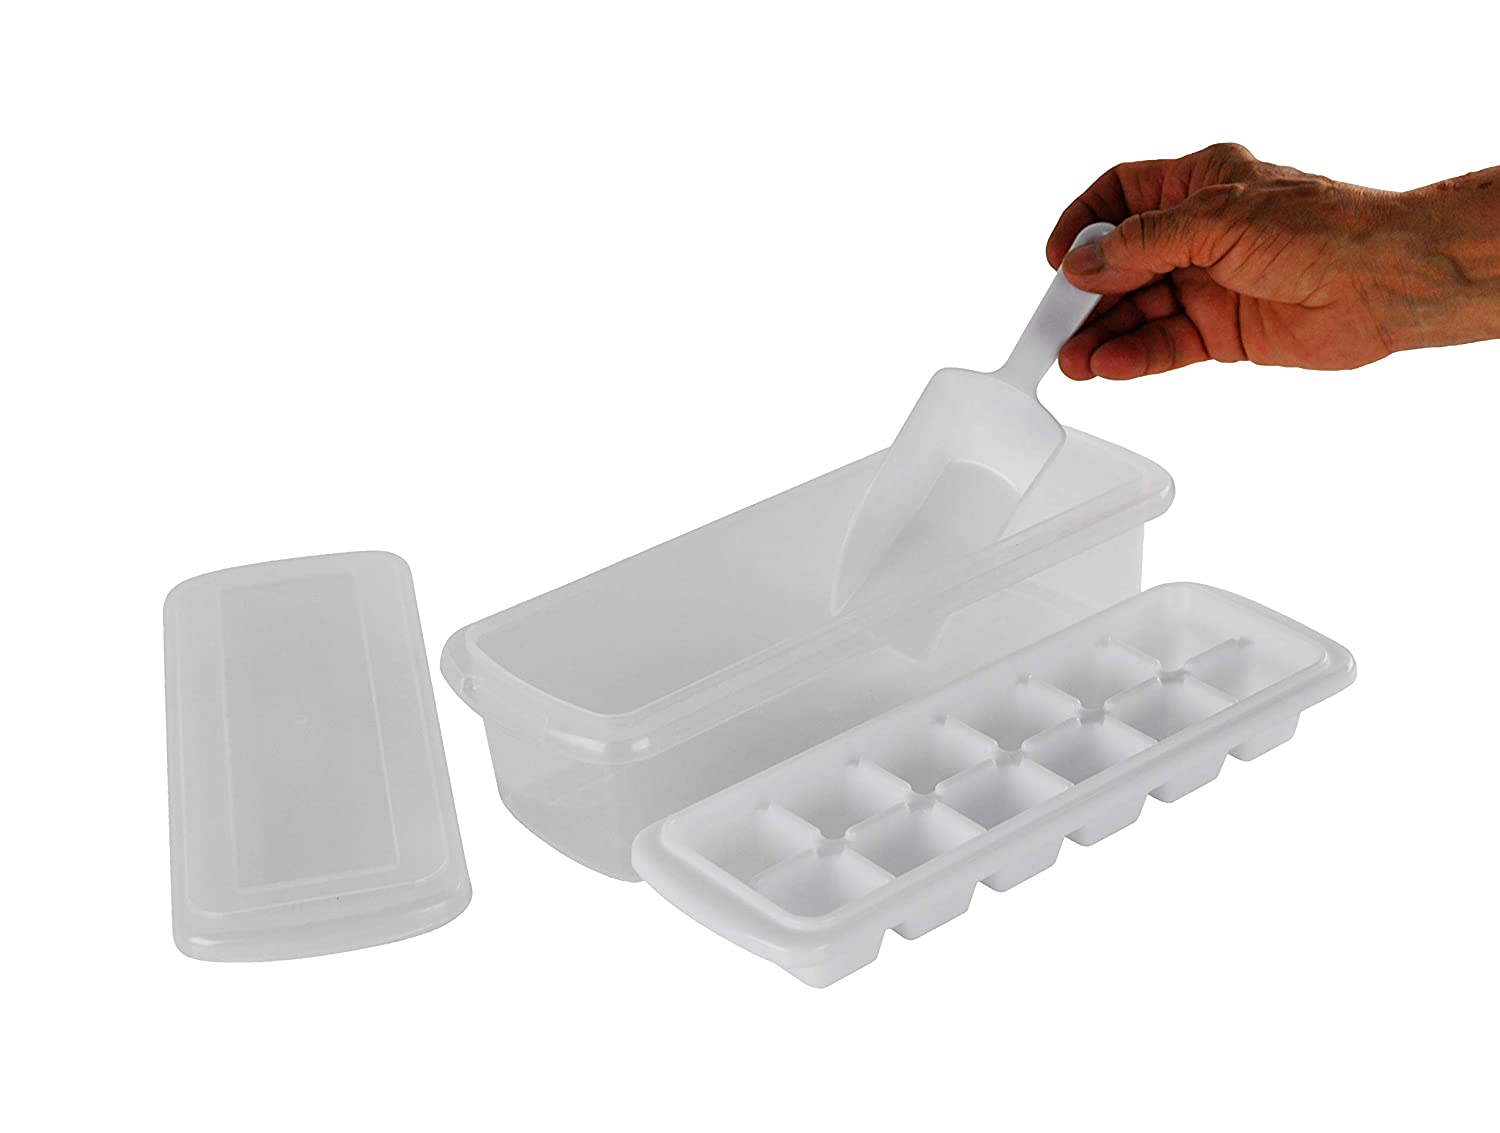 HOME-X Ice Cube Maker with Holder Tray and Scoop, Home Bar Accessories for Freezer